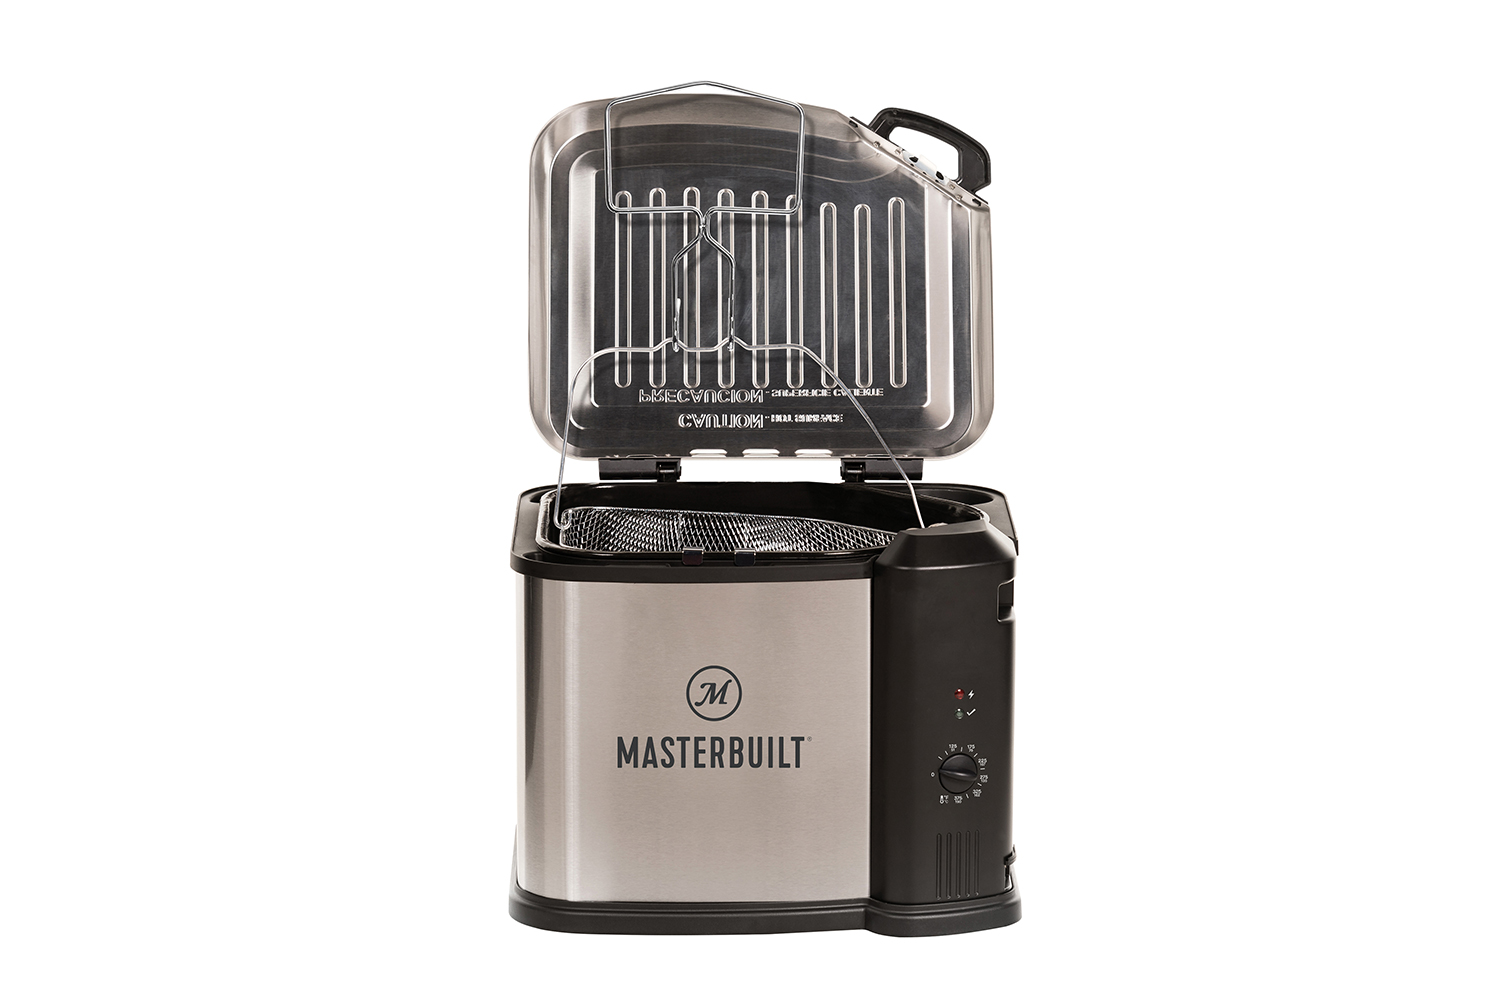 Cook fish like a pro from anywhere with the Masterbuilt 10L XL Fryer, Boiler and Steamer